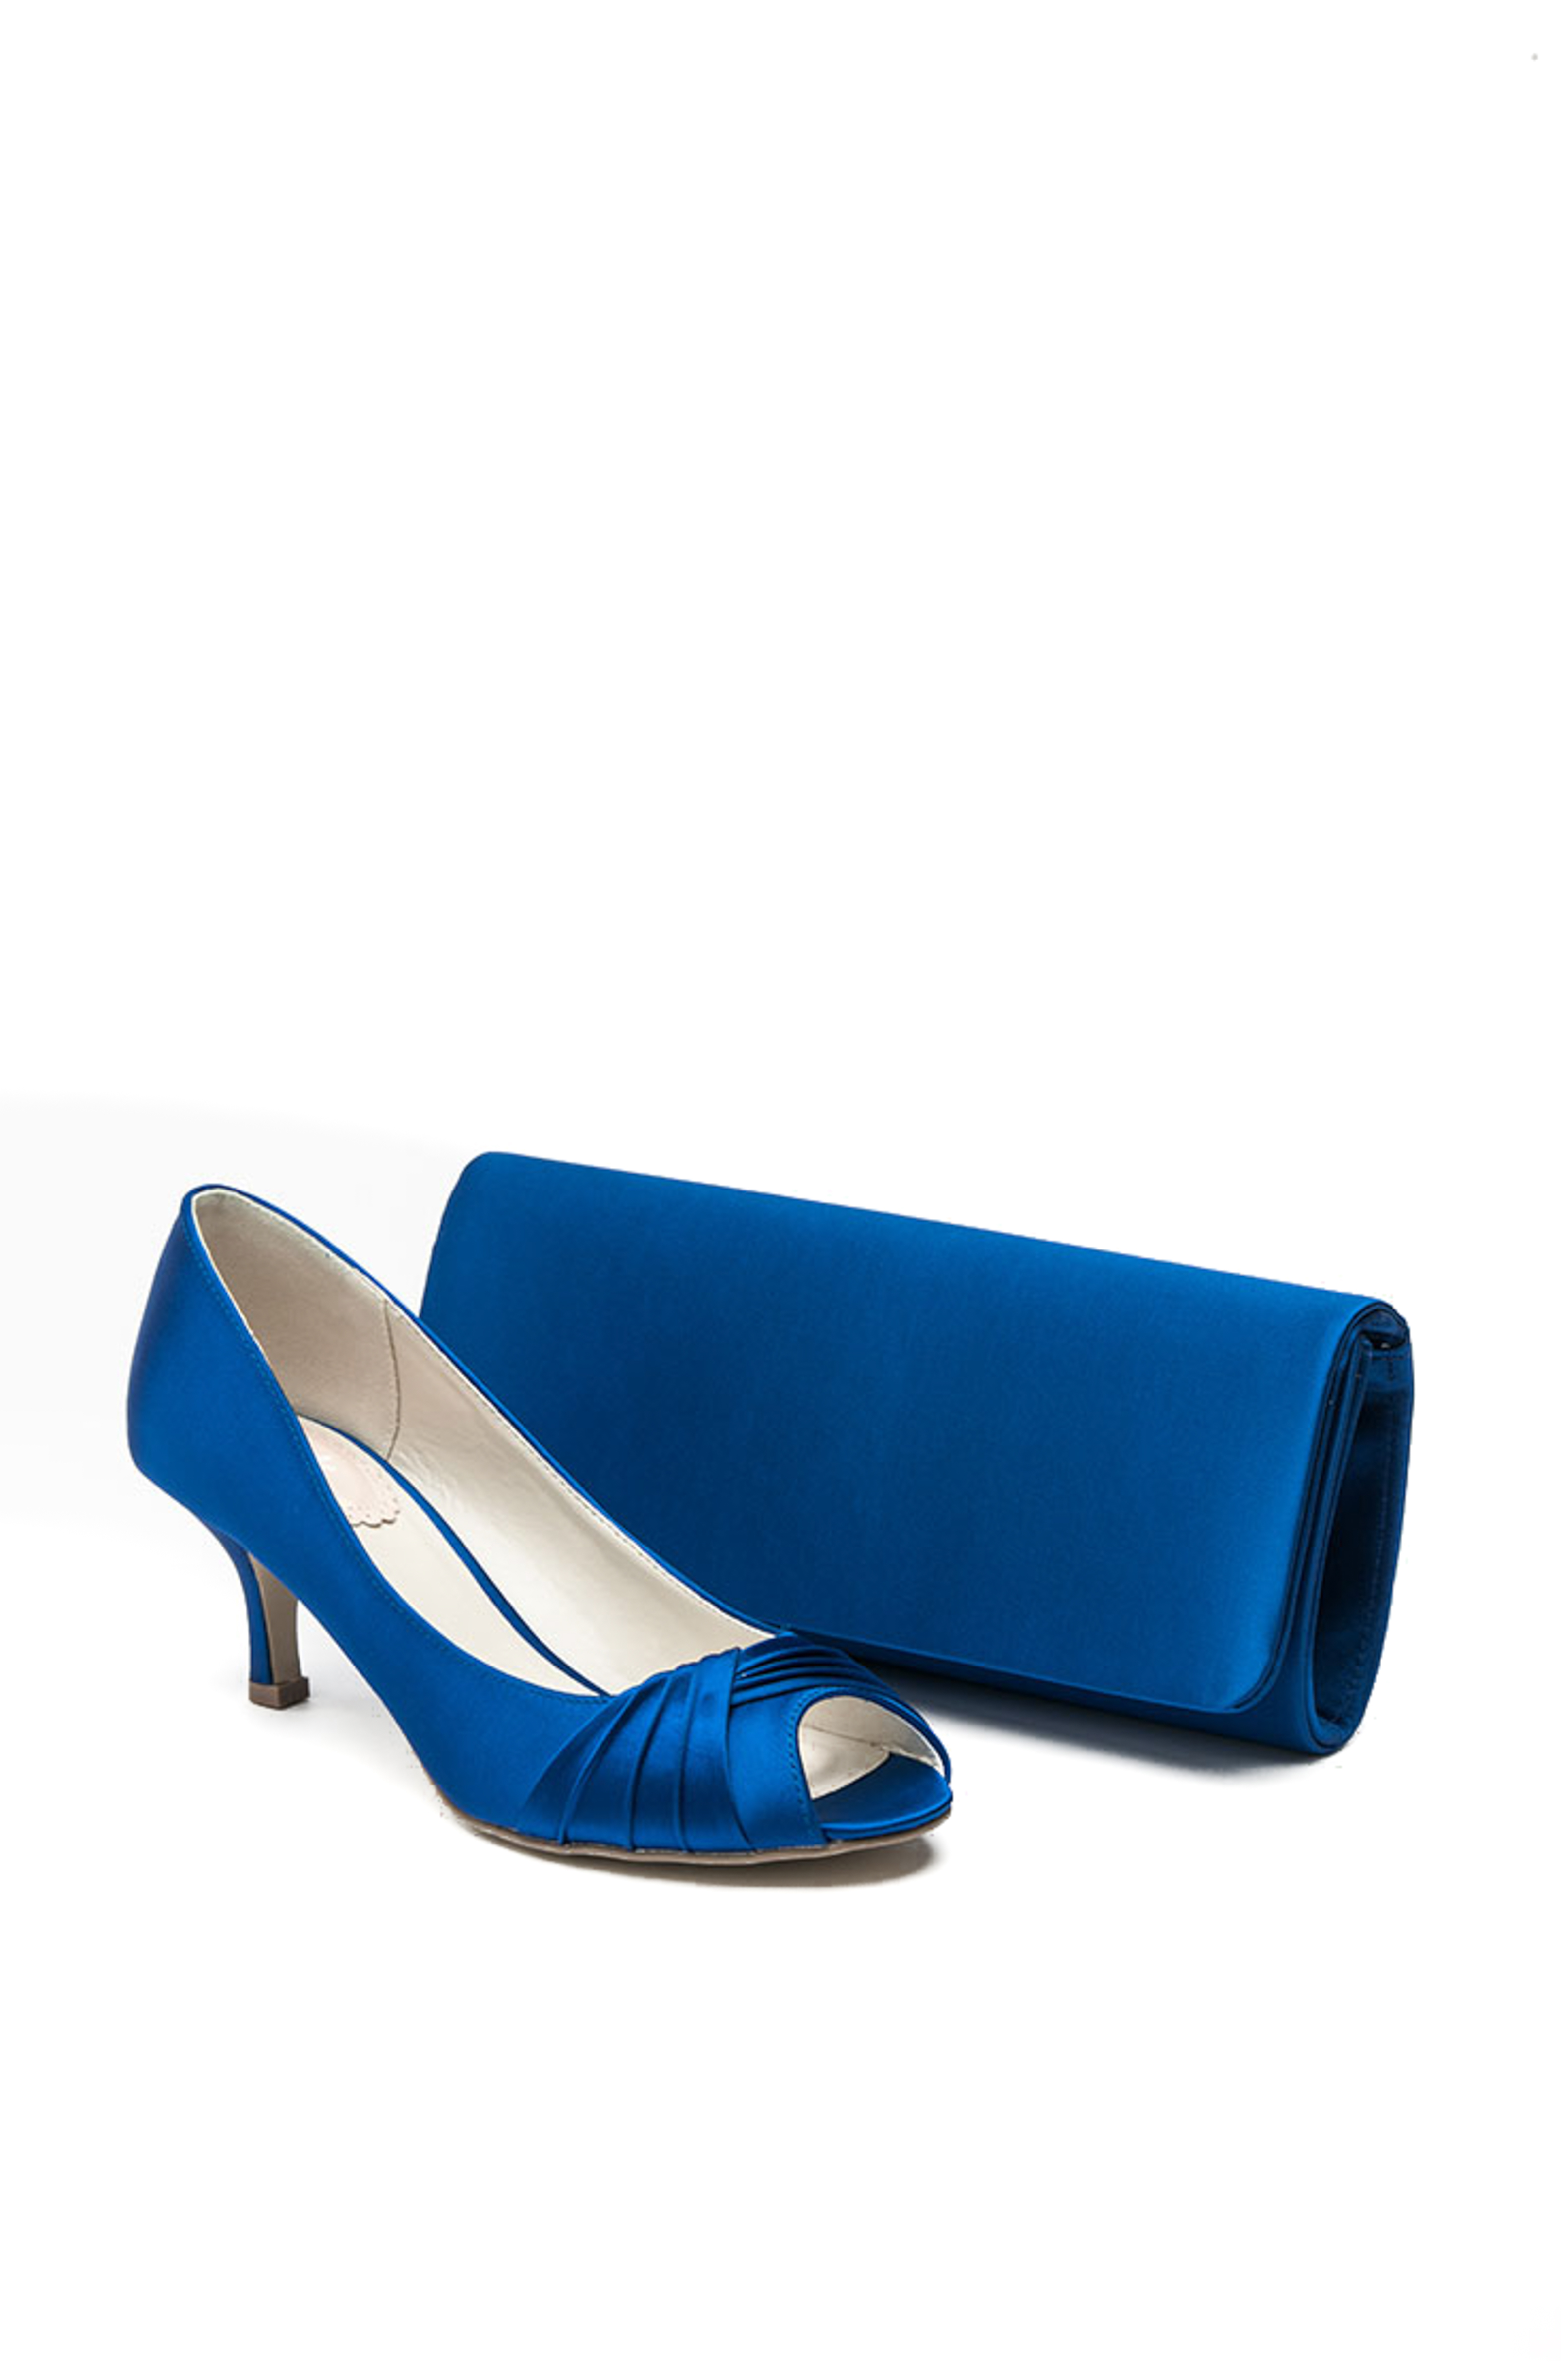 Low Height Royal Blue Satin Peep Toe Shoe P16g Size 3 59 Now 39 Bag 32 25 Catherines Of Partick